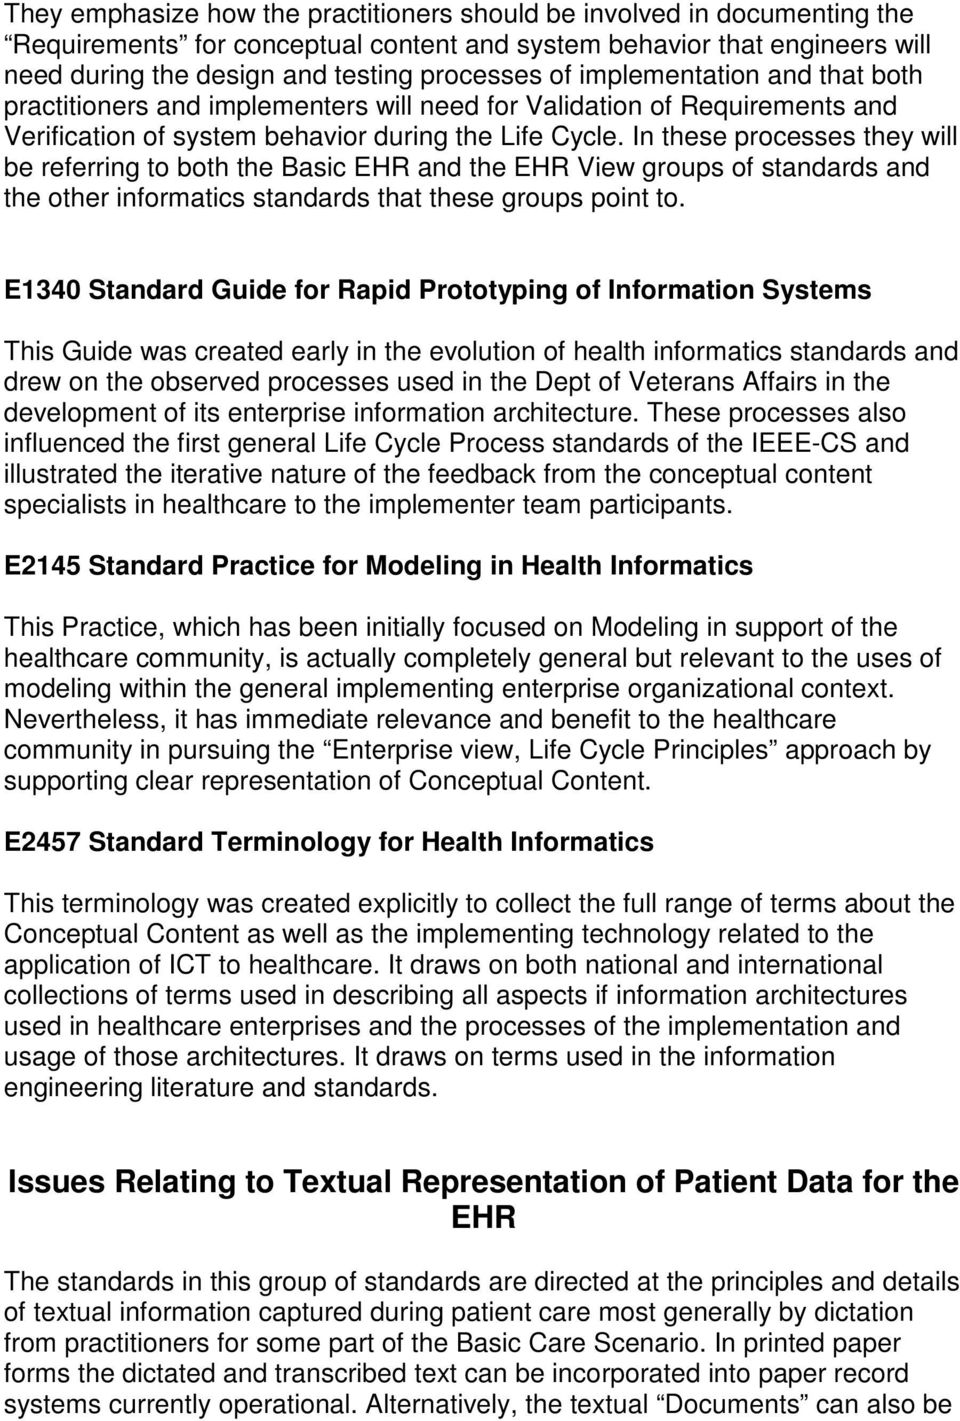 In these processes they will be referring to both the Basic EHR and the EHR View groups of standards and the other informatics standards that these groups point to.